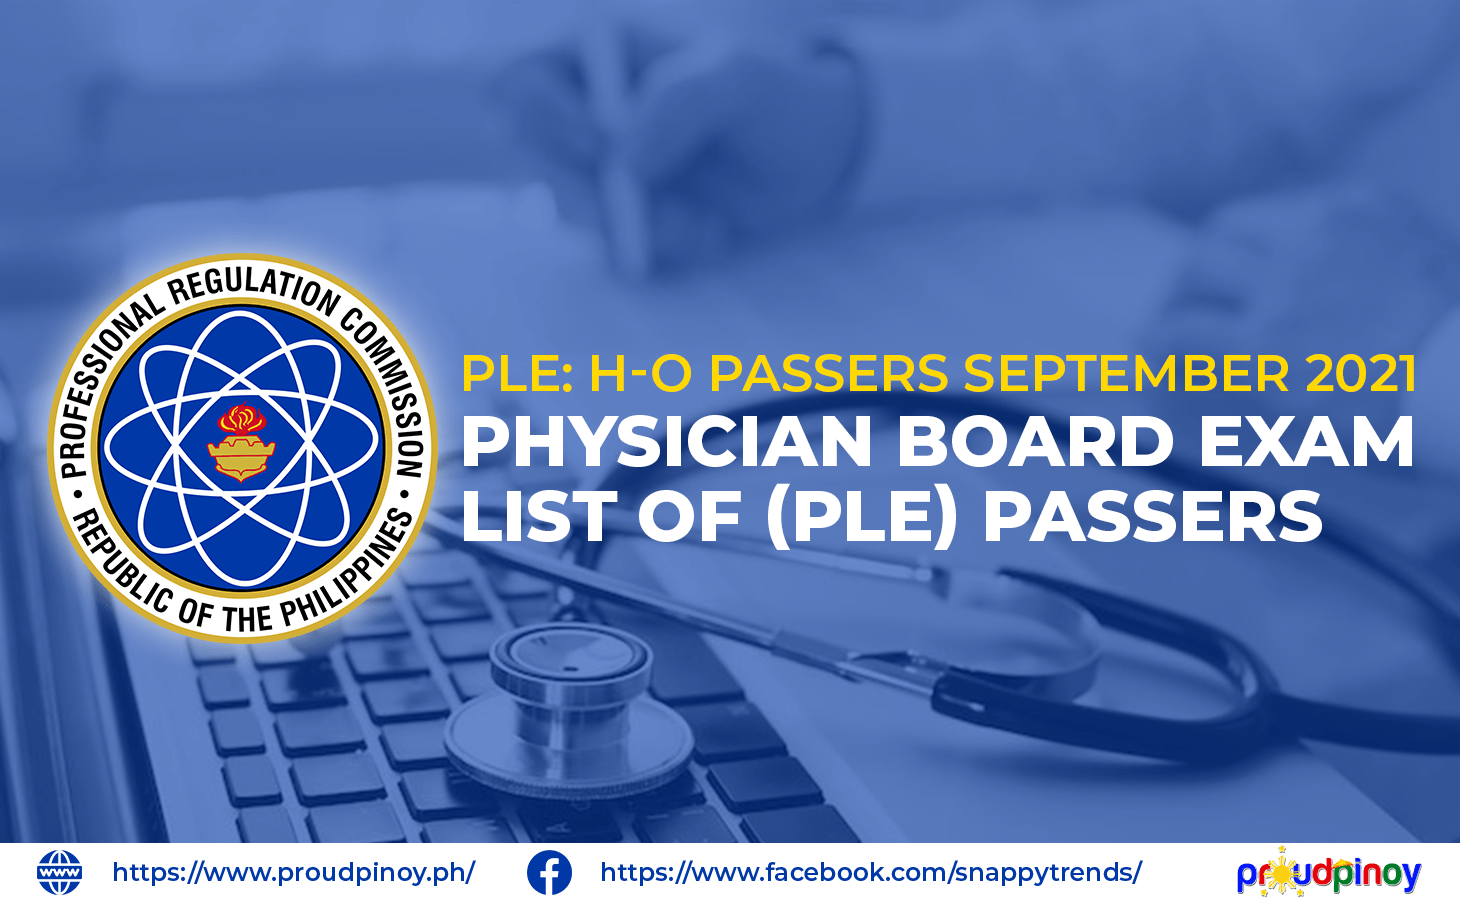 h-o passers september 2021 - physician board exam